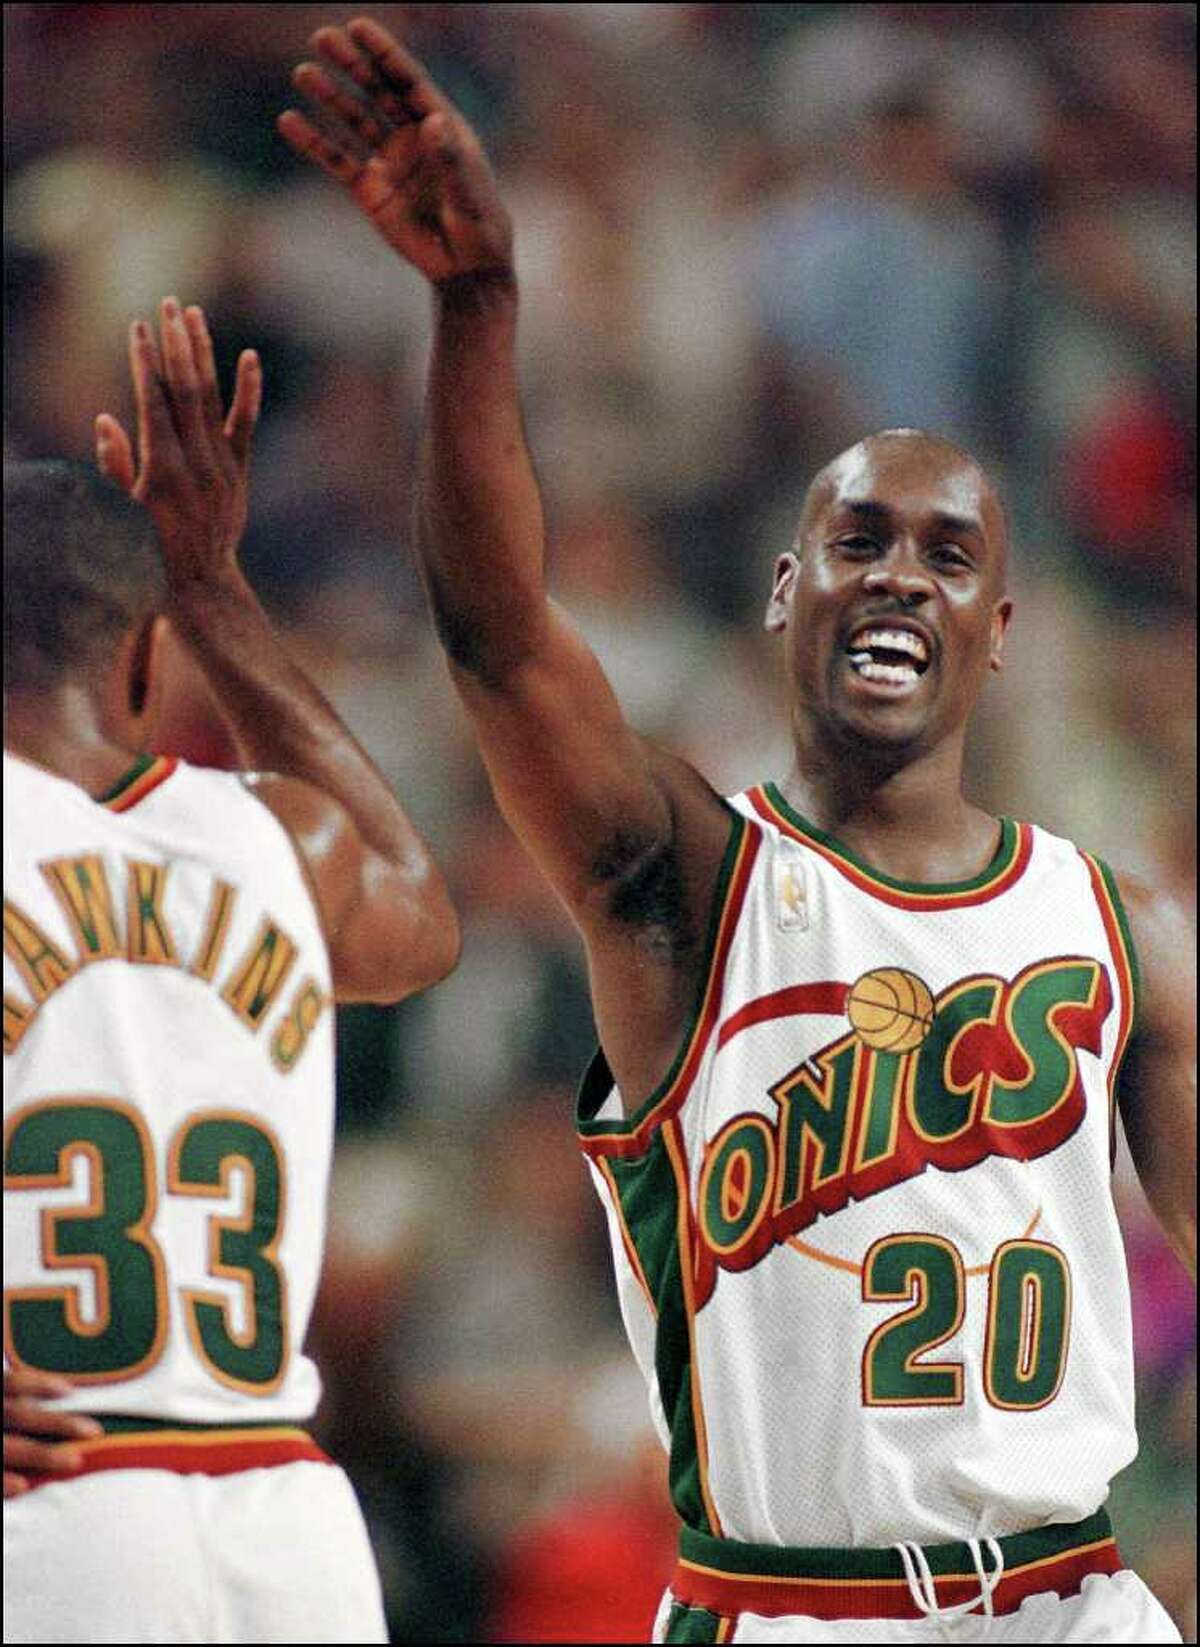 Last weekend, a charity basketball event was held at KeyArena. Many of the NBA products who grew up in the Seattle area played, and it was reminiscent of the days when those players would make trips back to the Key every year to play the Sonics. In the spirit of remembrance, here is a look back at the best players to suit up for the Sonics over the team's 41-year history in Seattle.